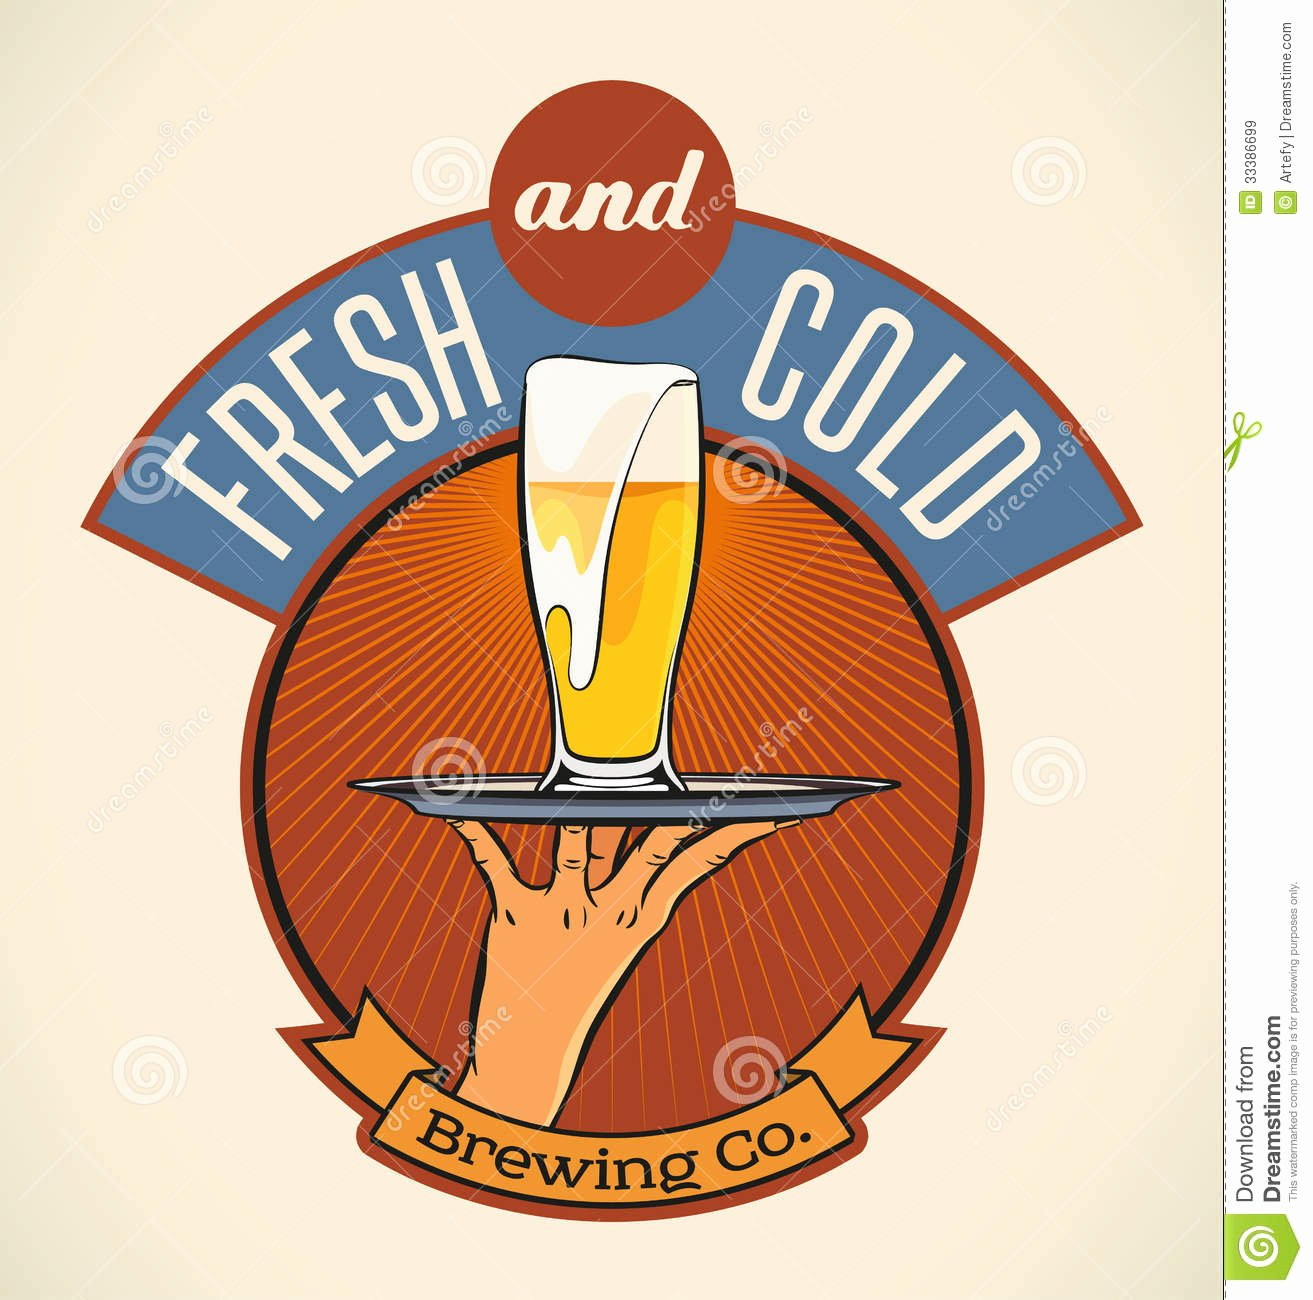 Beer Can Label Template Elegant Fresh and Cold Royalty Free Stock Image